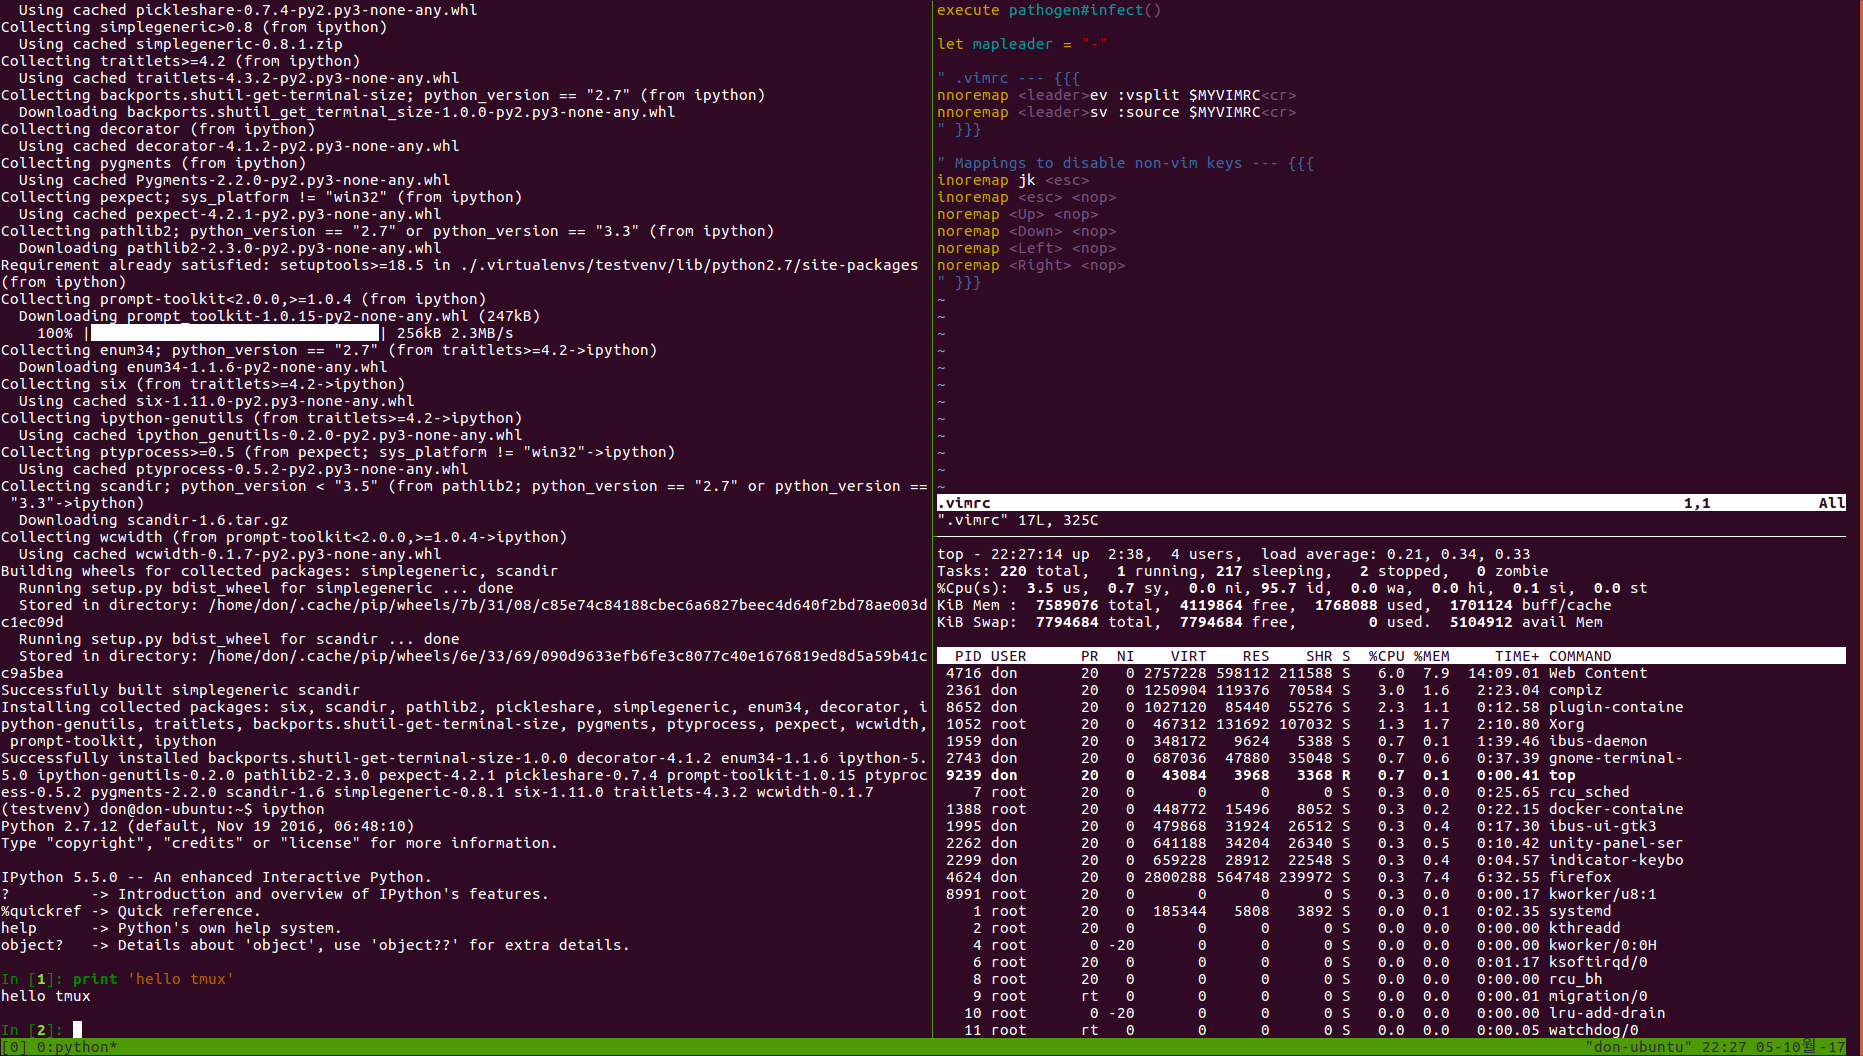 tmux working example